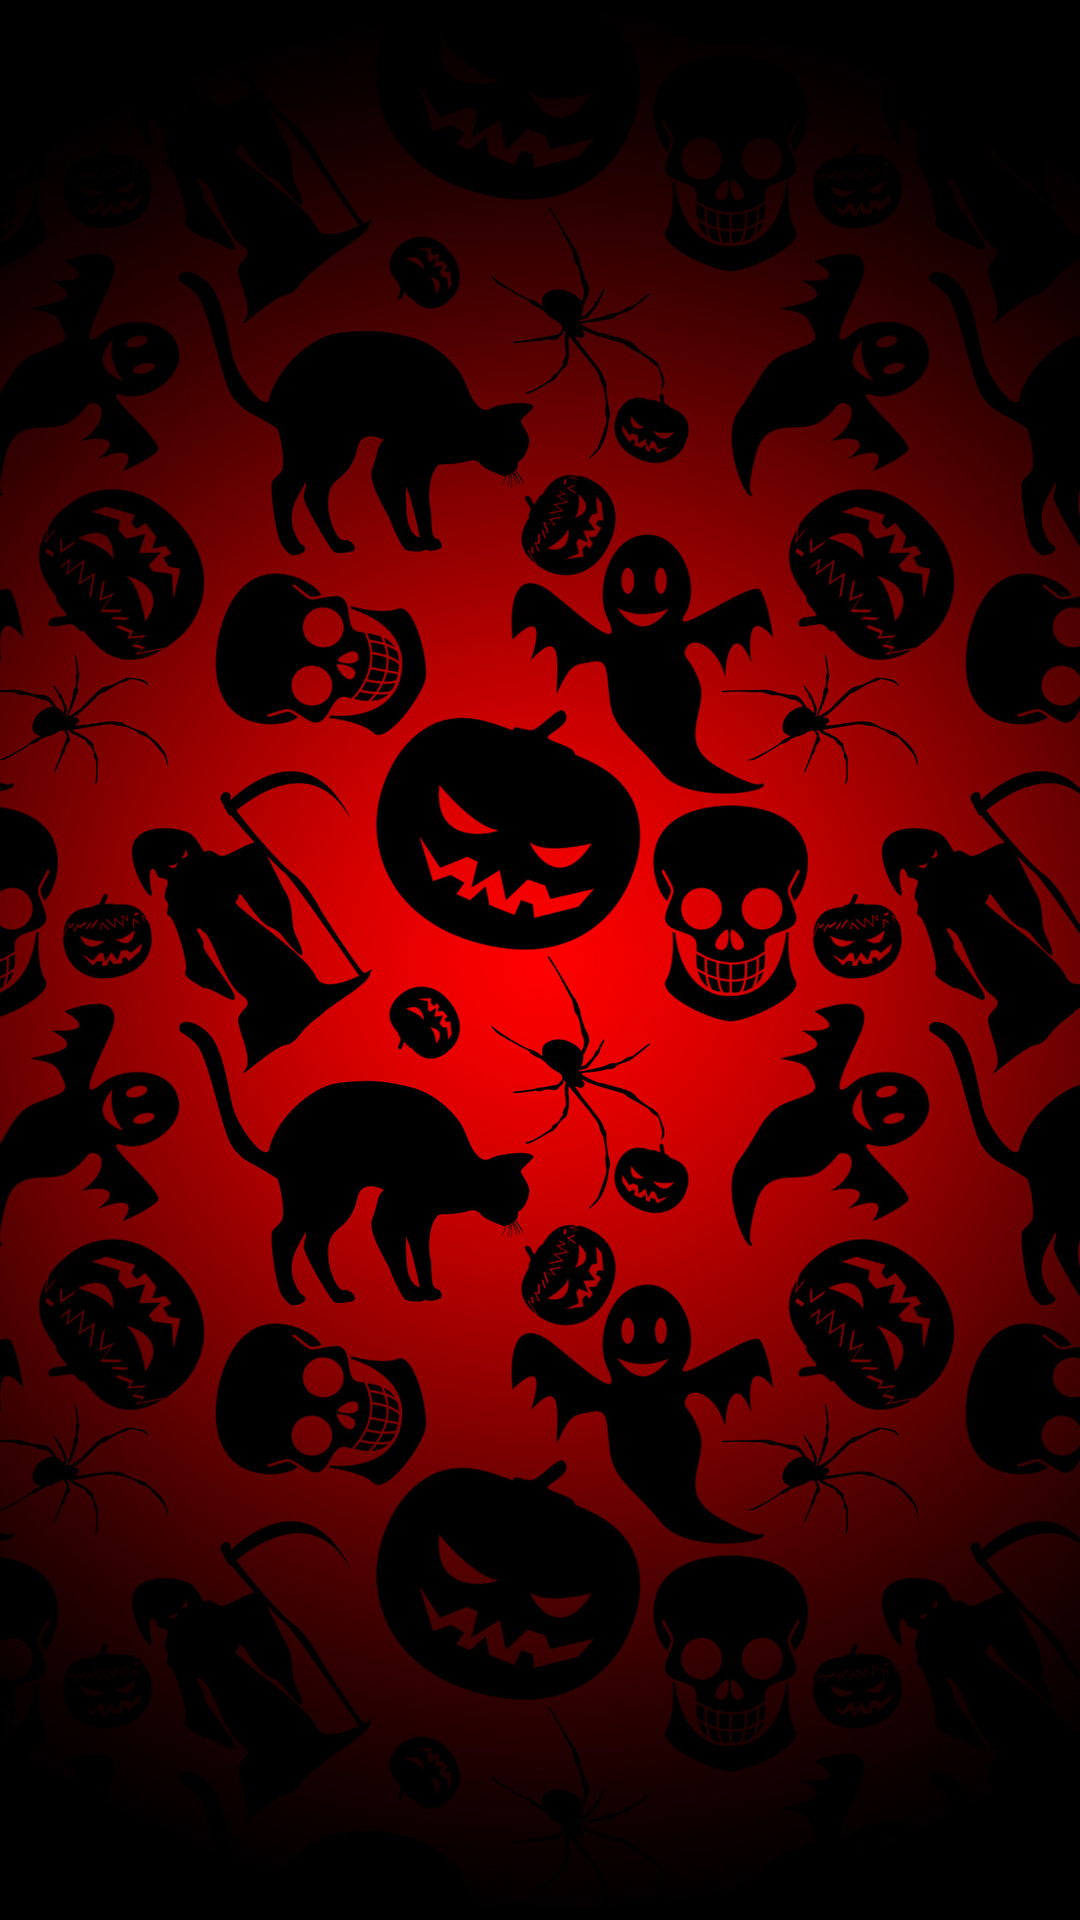 Free Animated Mobile Wallpapers Halloween Wallpapers Iphone Y Android Fondos De Pantalla